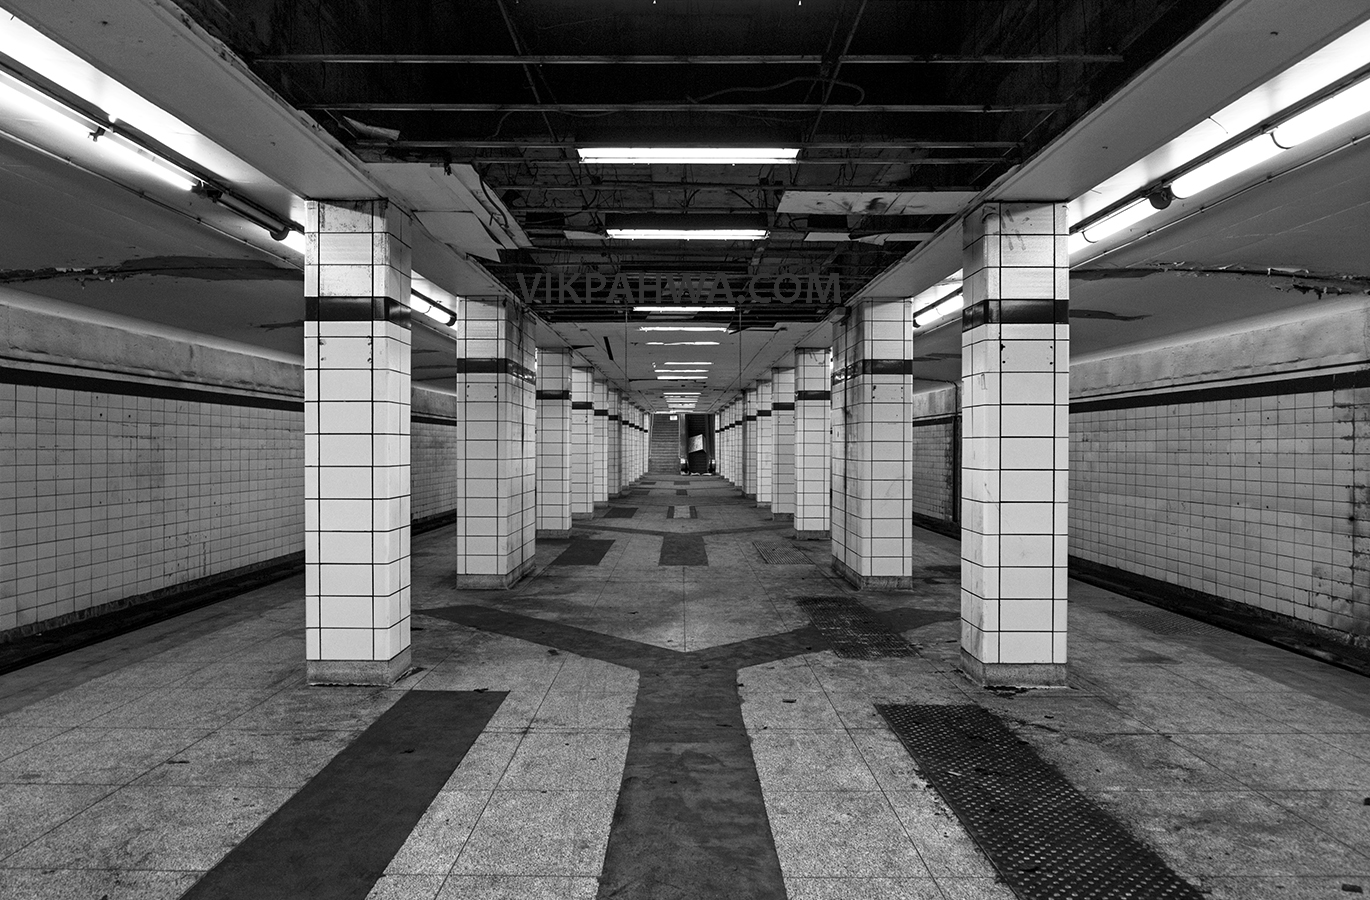 20180521 Check Out An Abandoned Subway Station Closed For